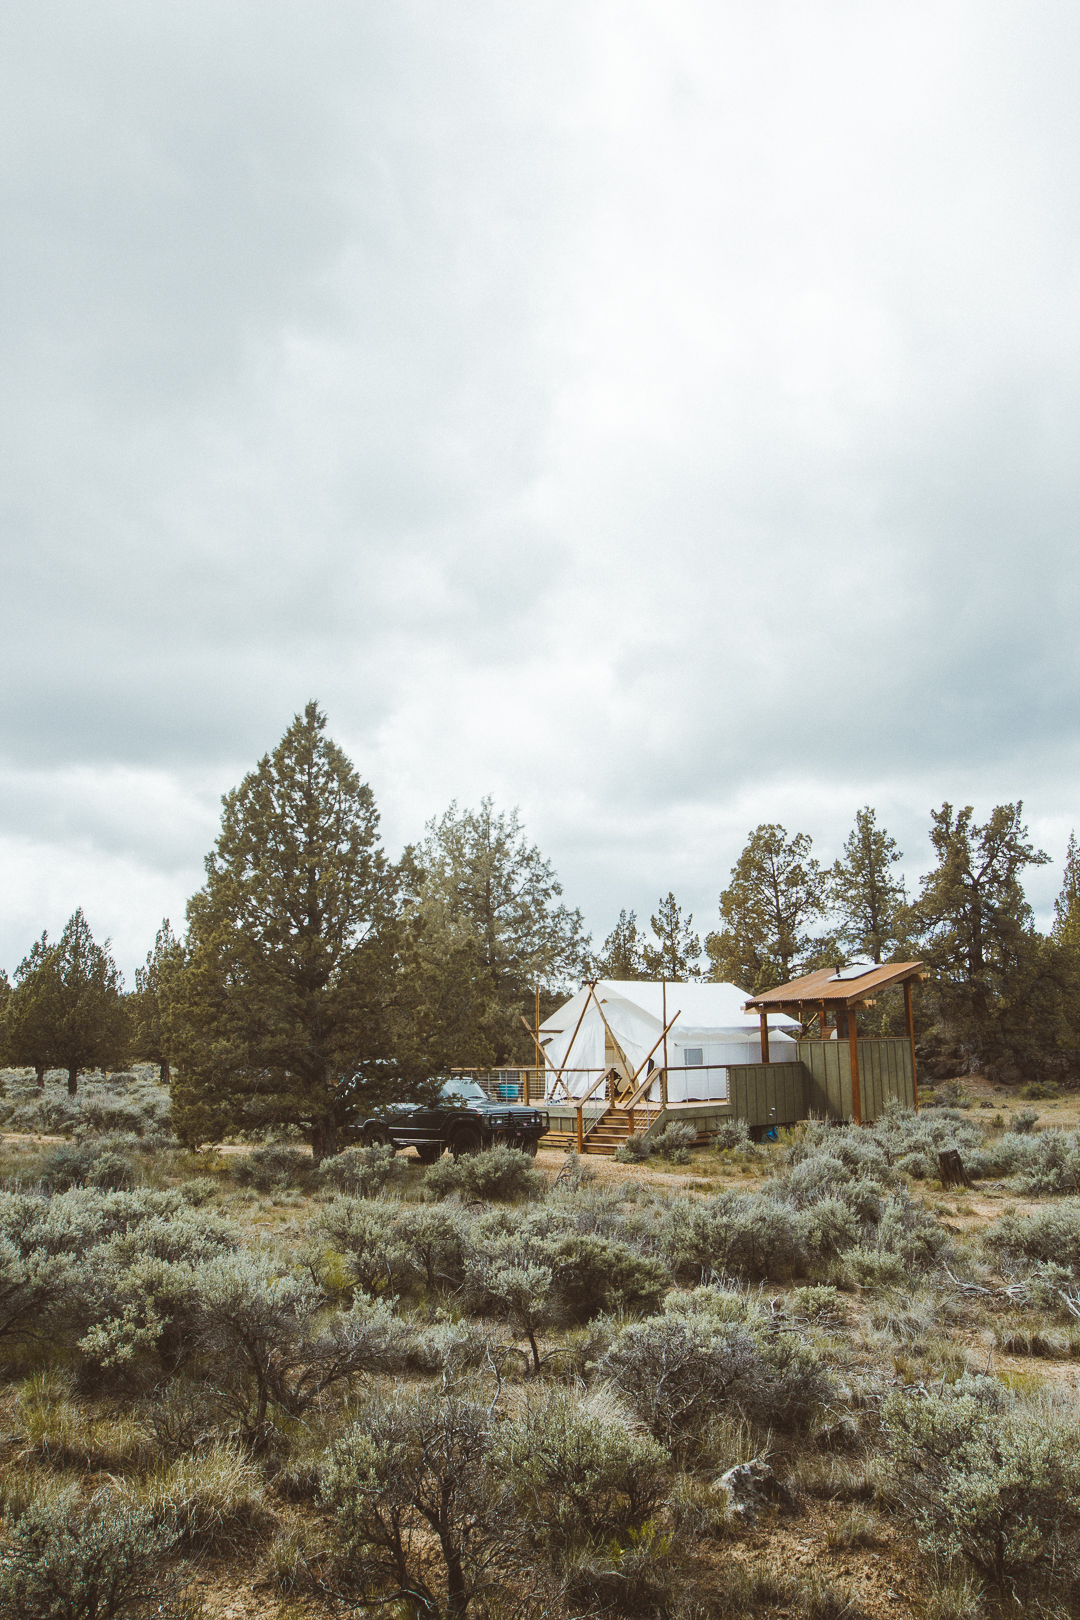 Glamping at Panacea at the Canyon by Octave Zangs for Hipcamp